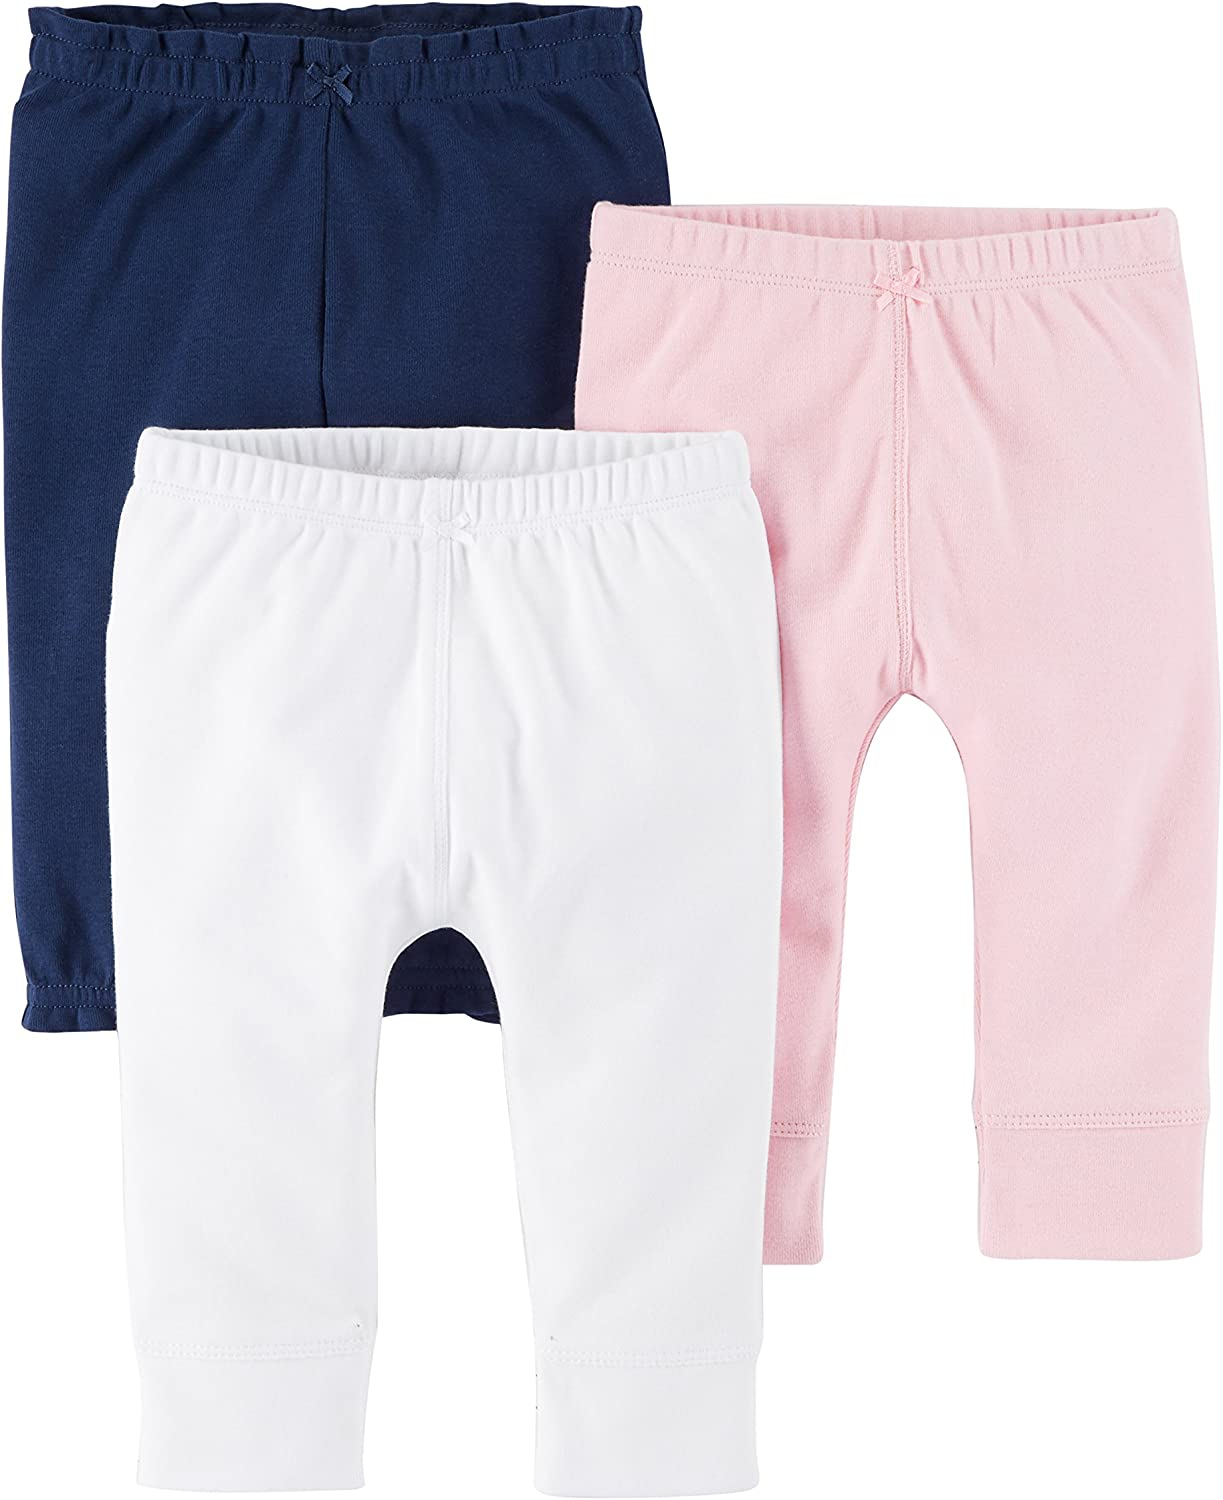 Carters Baby Girls 3-Pack Pants